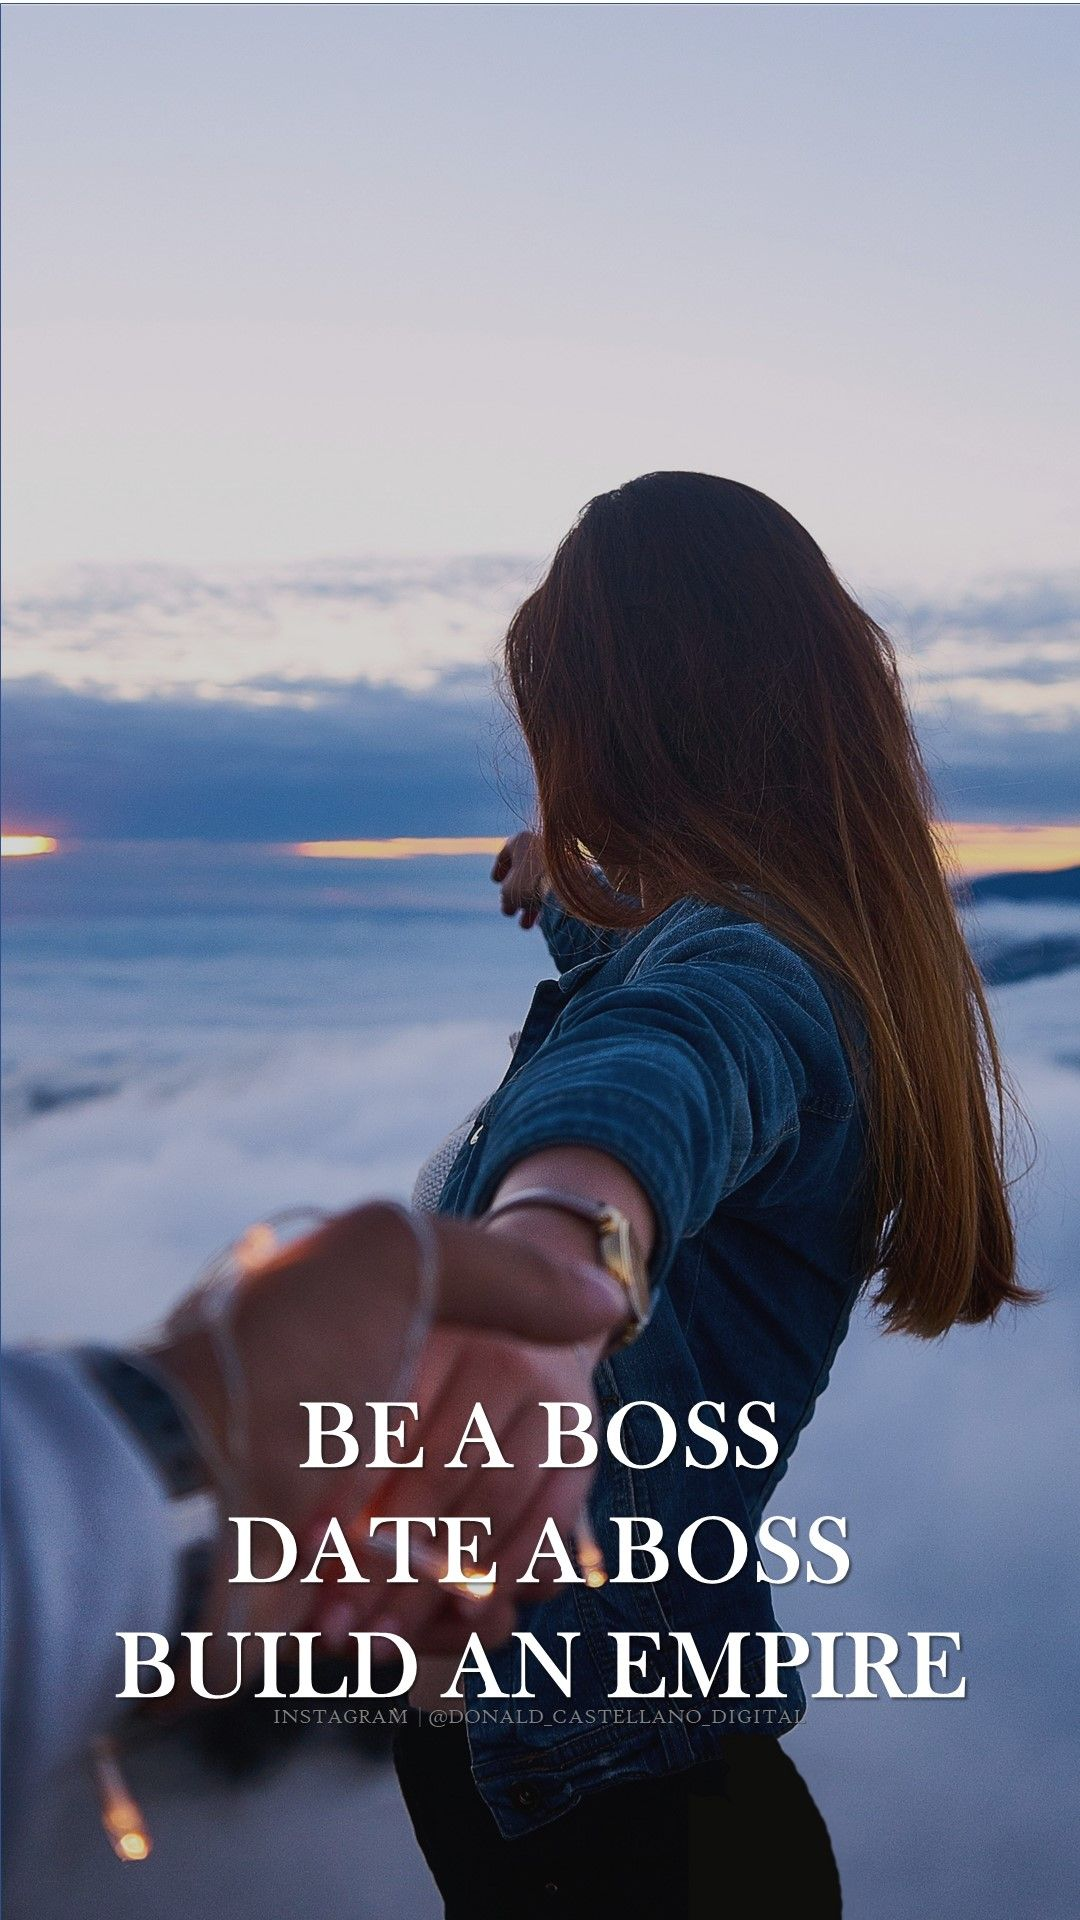 Be A Boss Date A Boss Build An Empire quotes